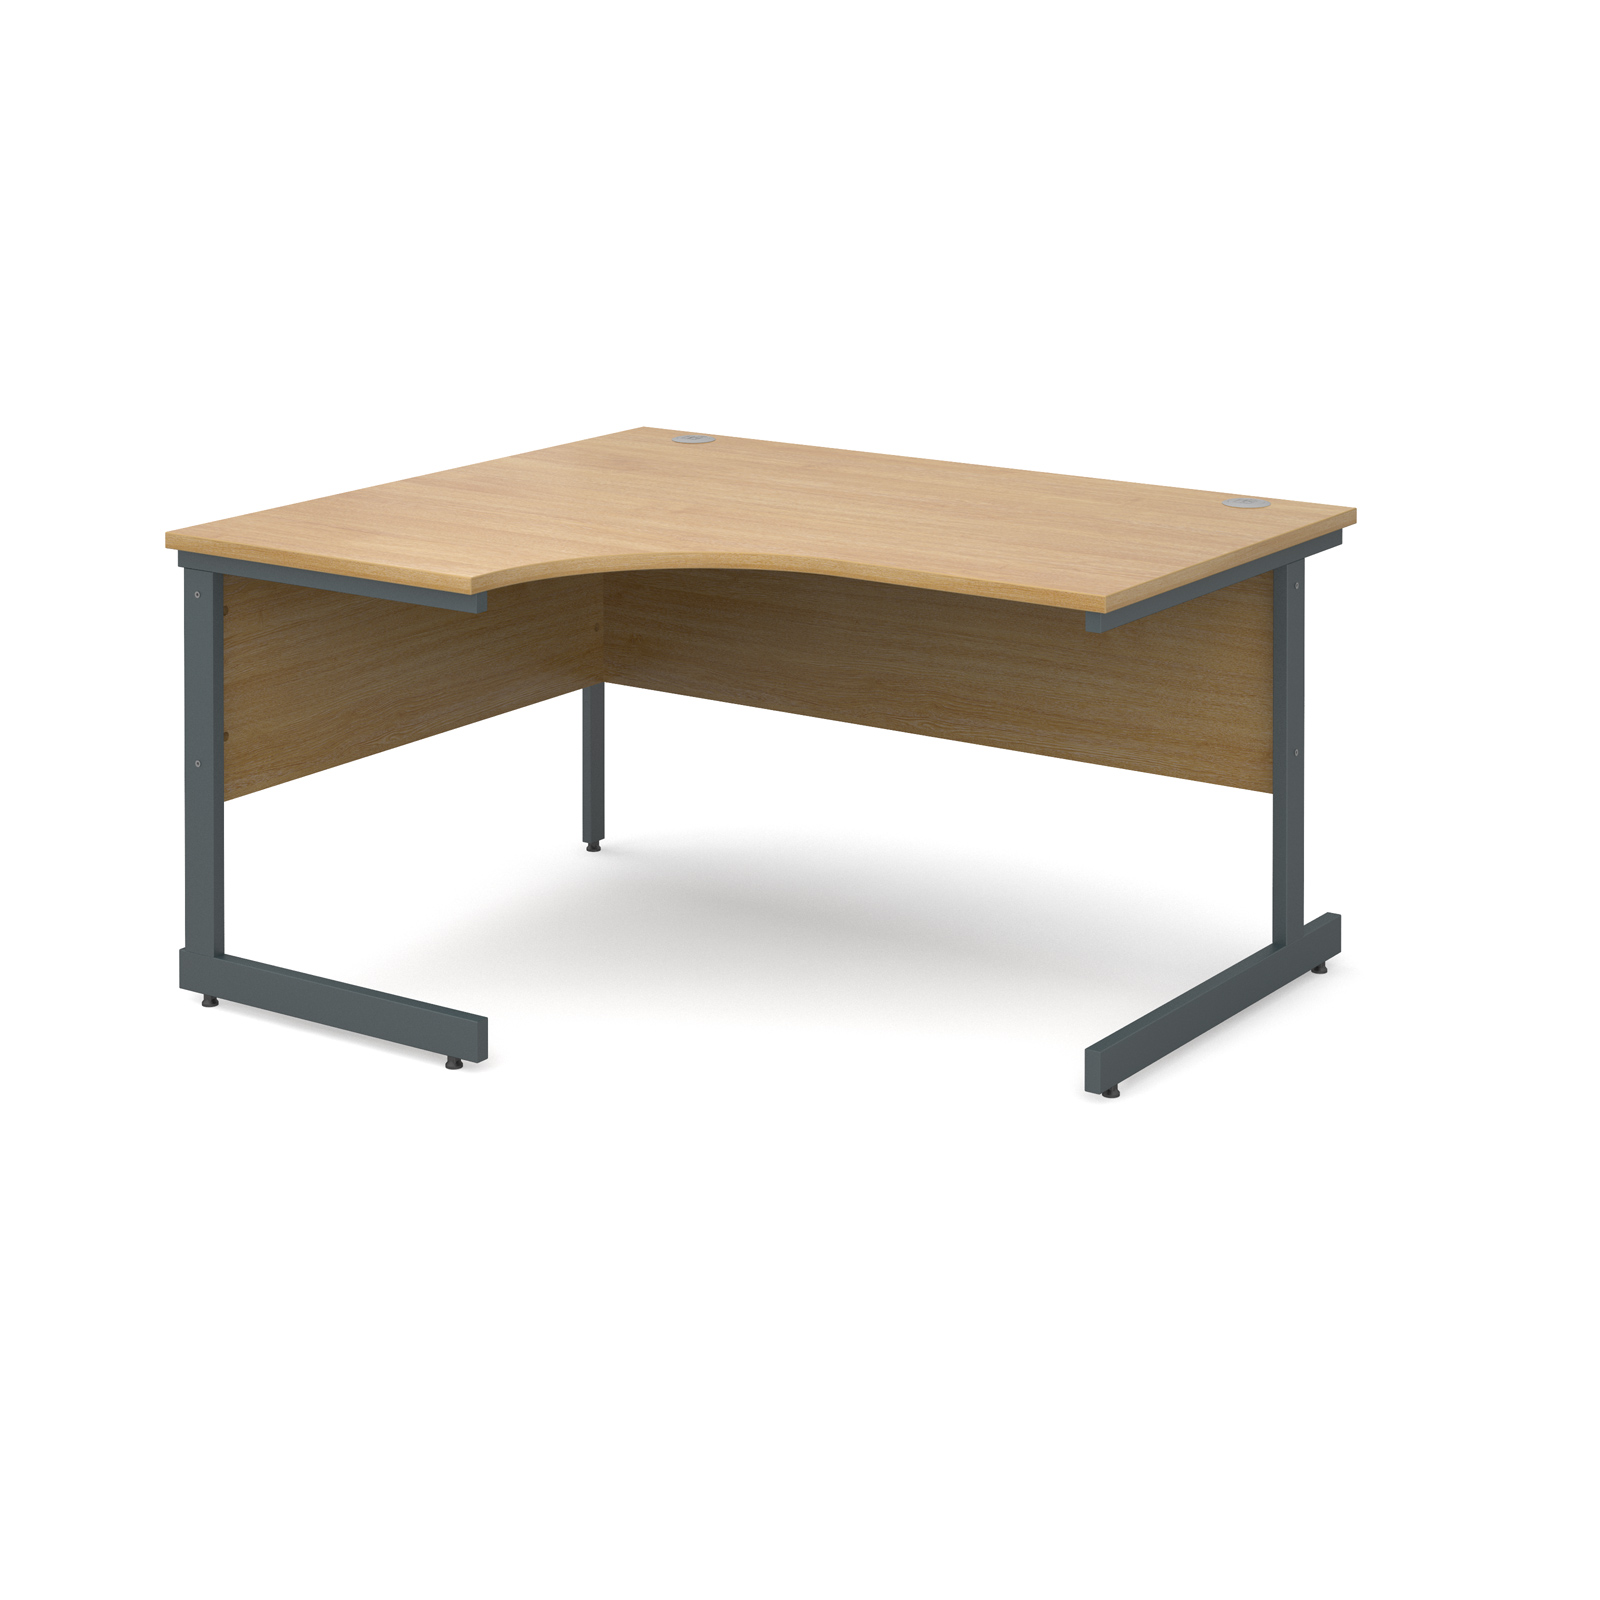 ND Desks